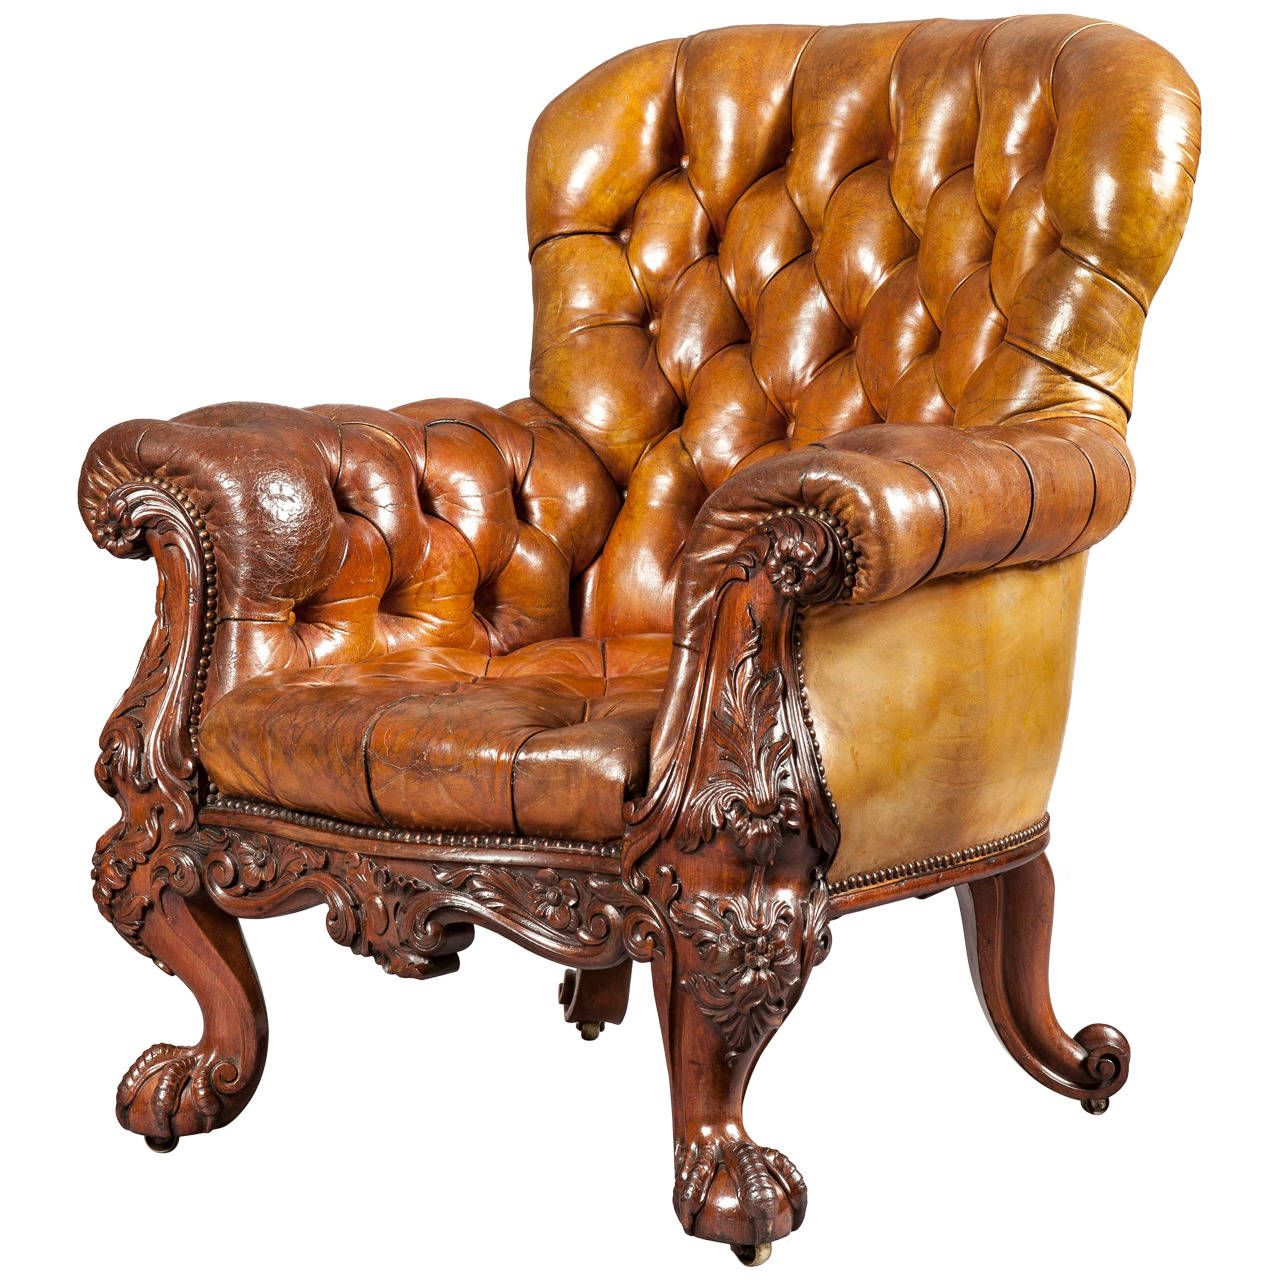 Antique furniture - Gentleman's Leather Library Chair Firmly Attributed To Gillows Of